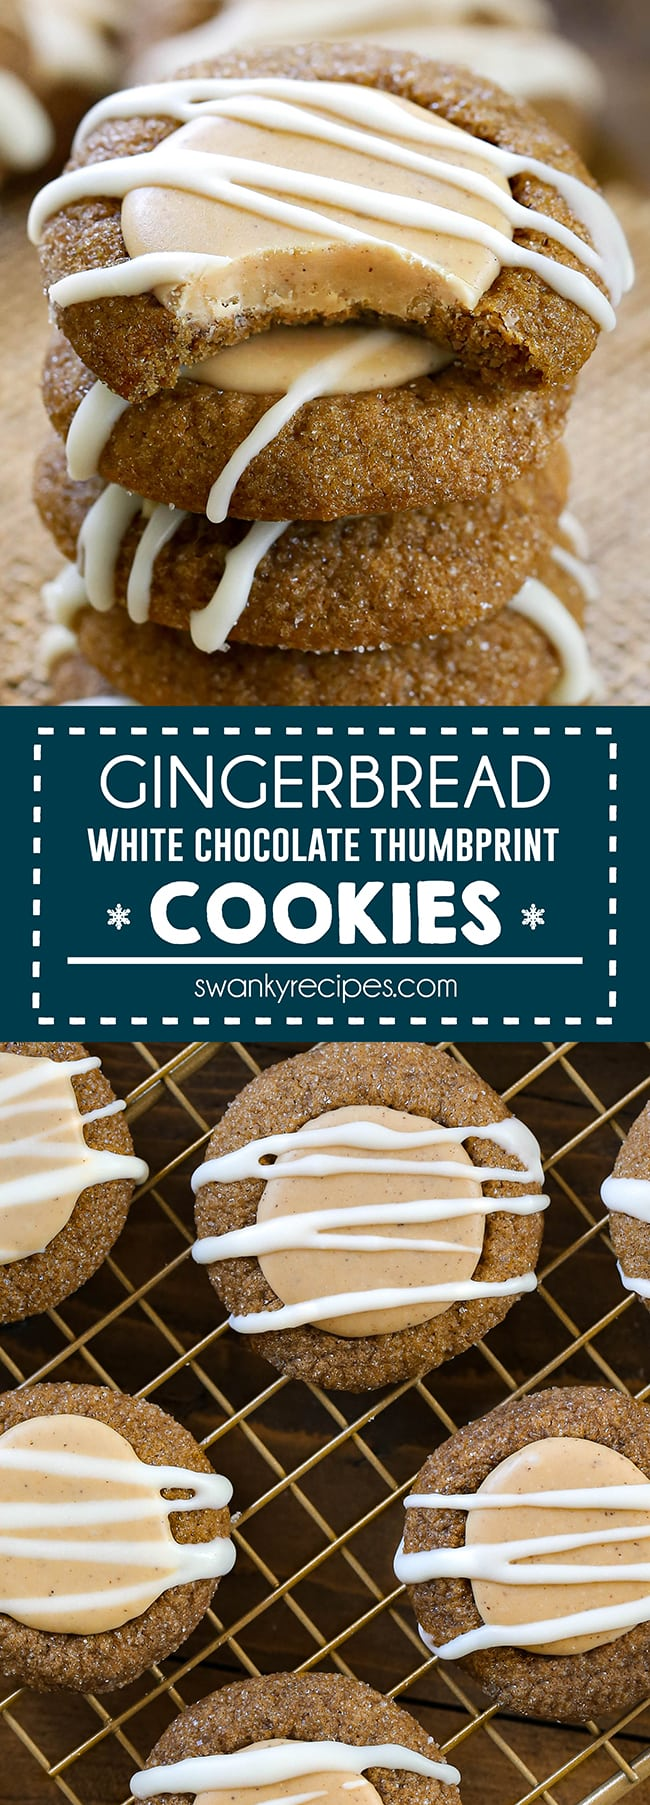 Gingerbread Thumbprint Cookies with White Chocolate - brown gingerbread cookies stacked on a burlap piece. Cookies have a thumbprint size white chocolate center with white chocolate drizzle. Text in center reads gingerbread white chocolate thumbprint cookies. 2nd image is an overhead photo of gingerbread cookies on a gold cooling rack with a wooden board.